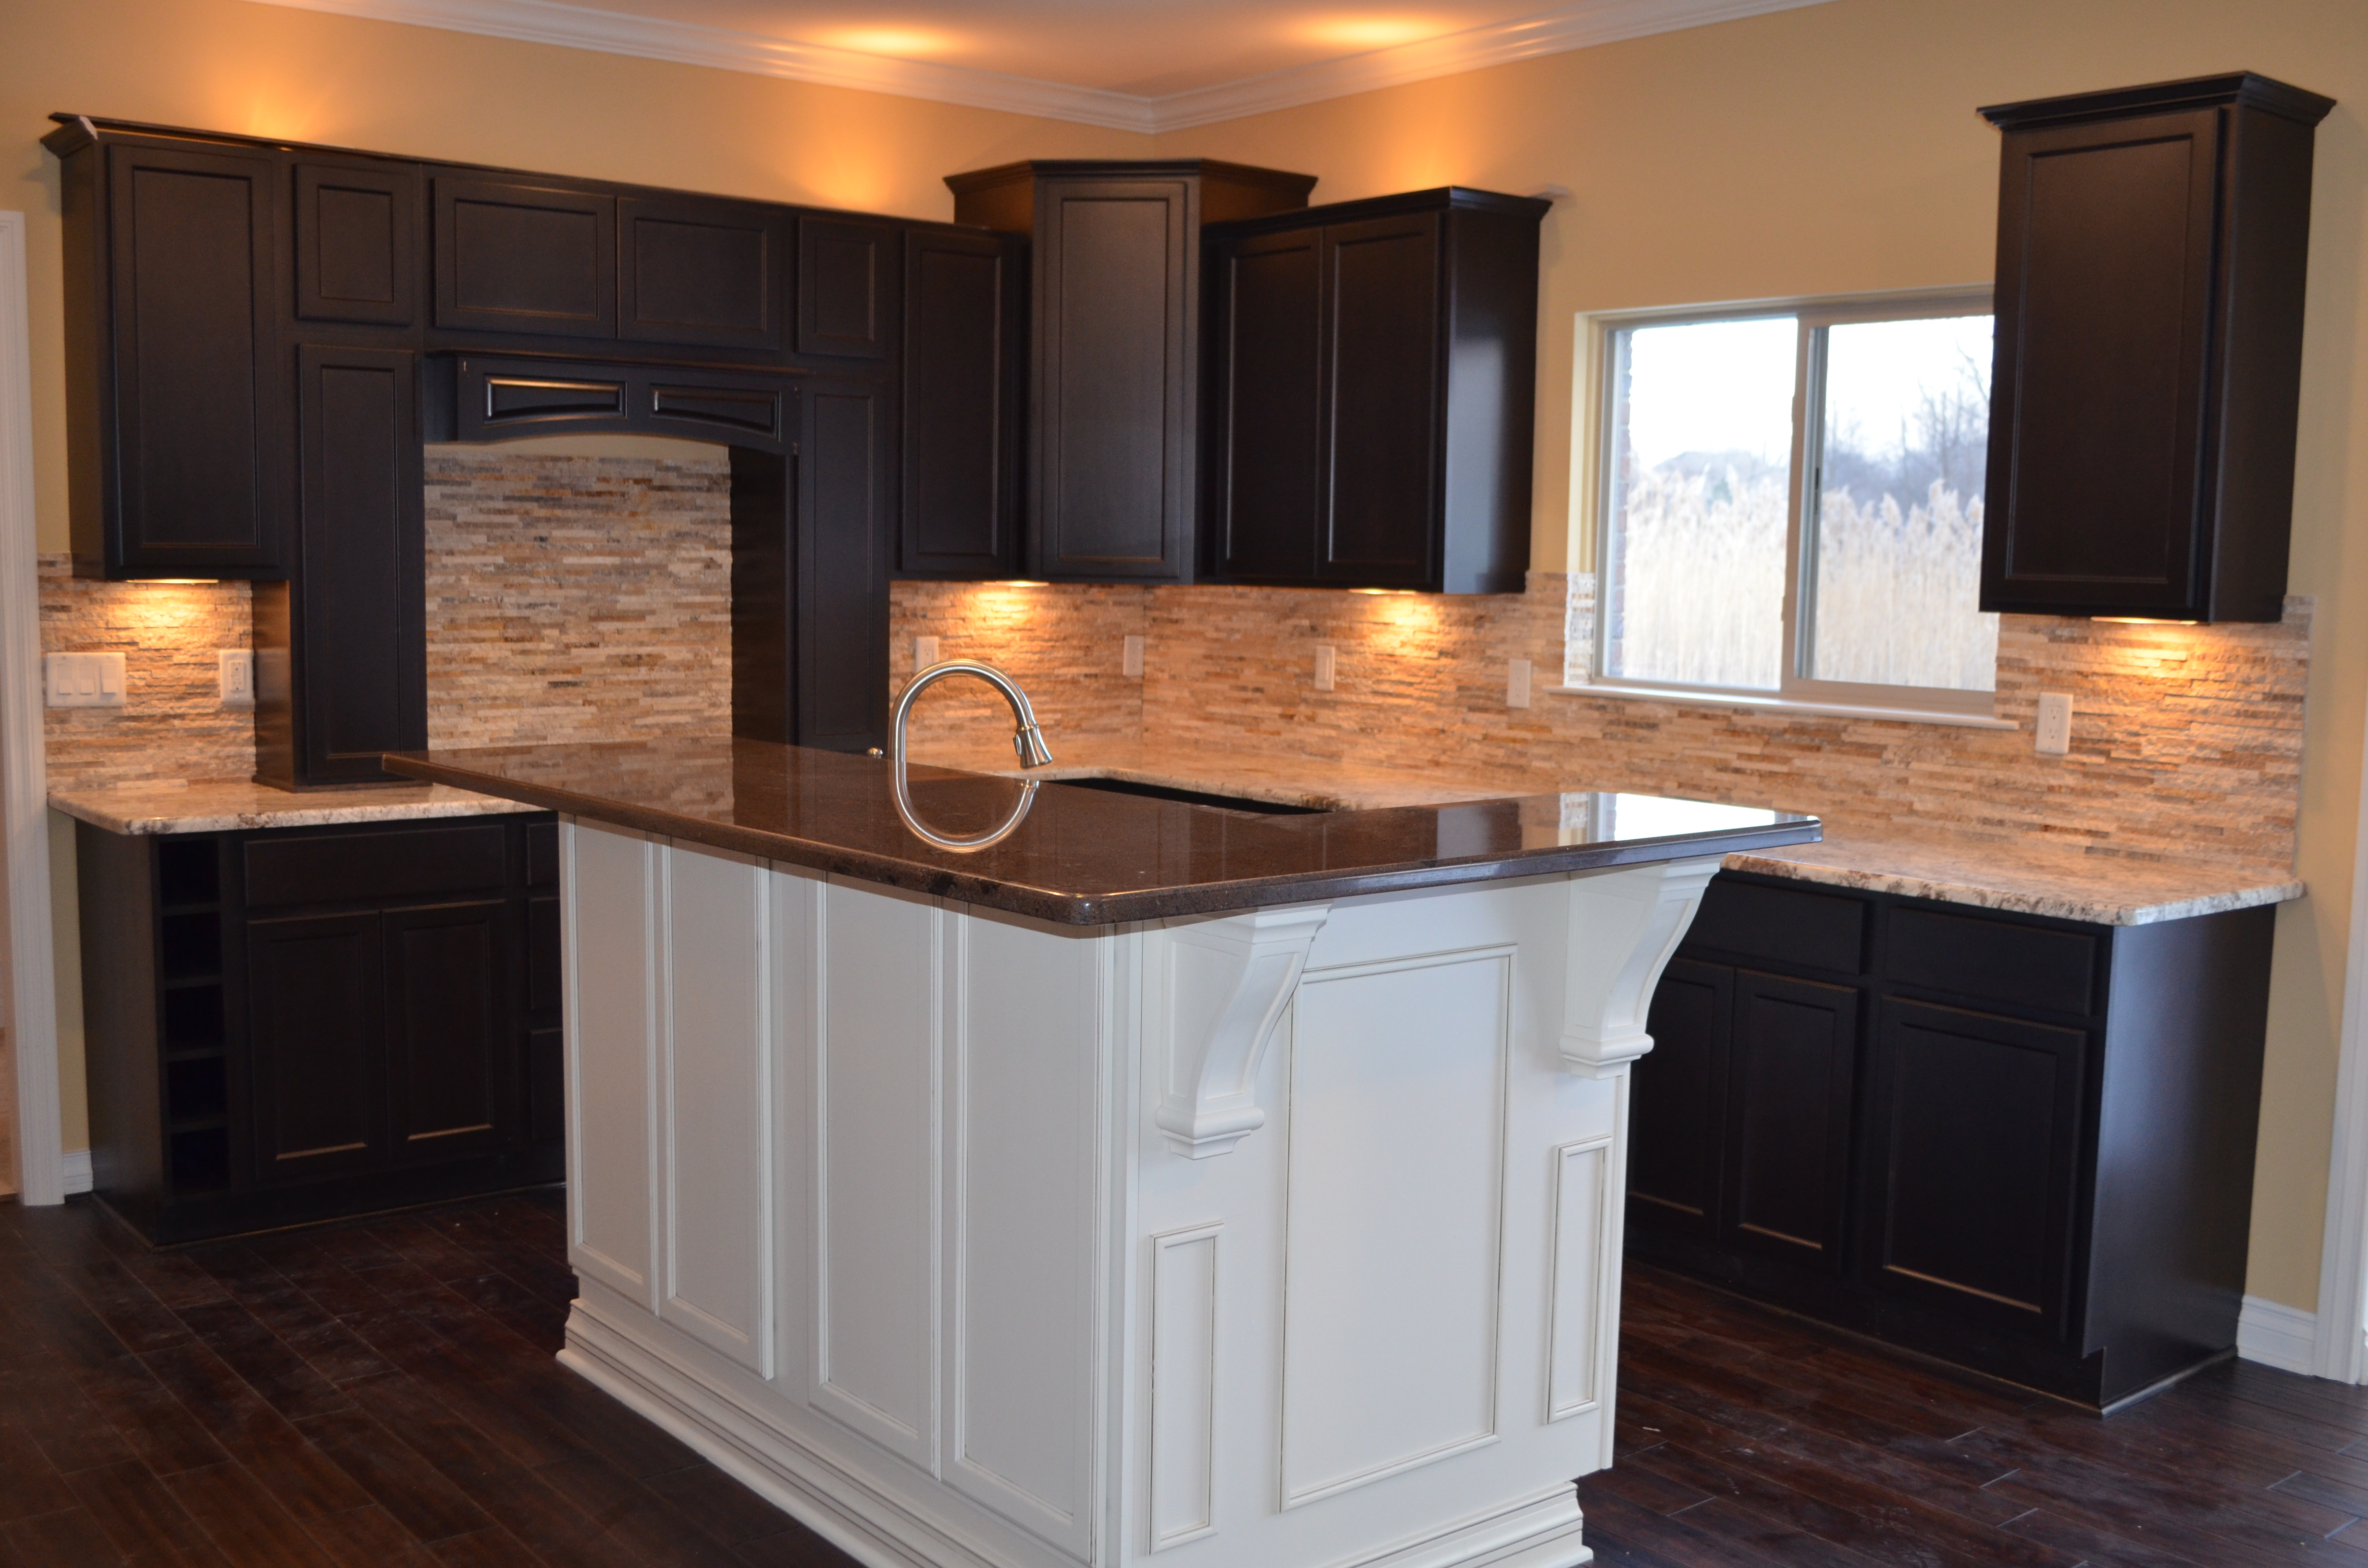 New Homes For Sale, Grand River Kit